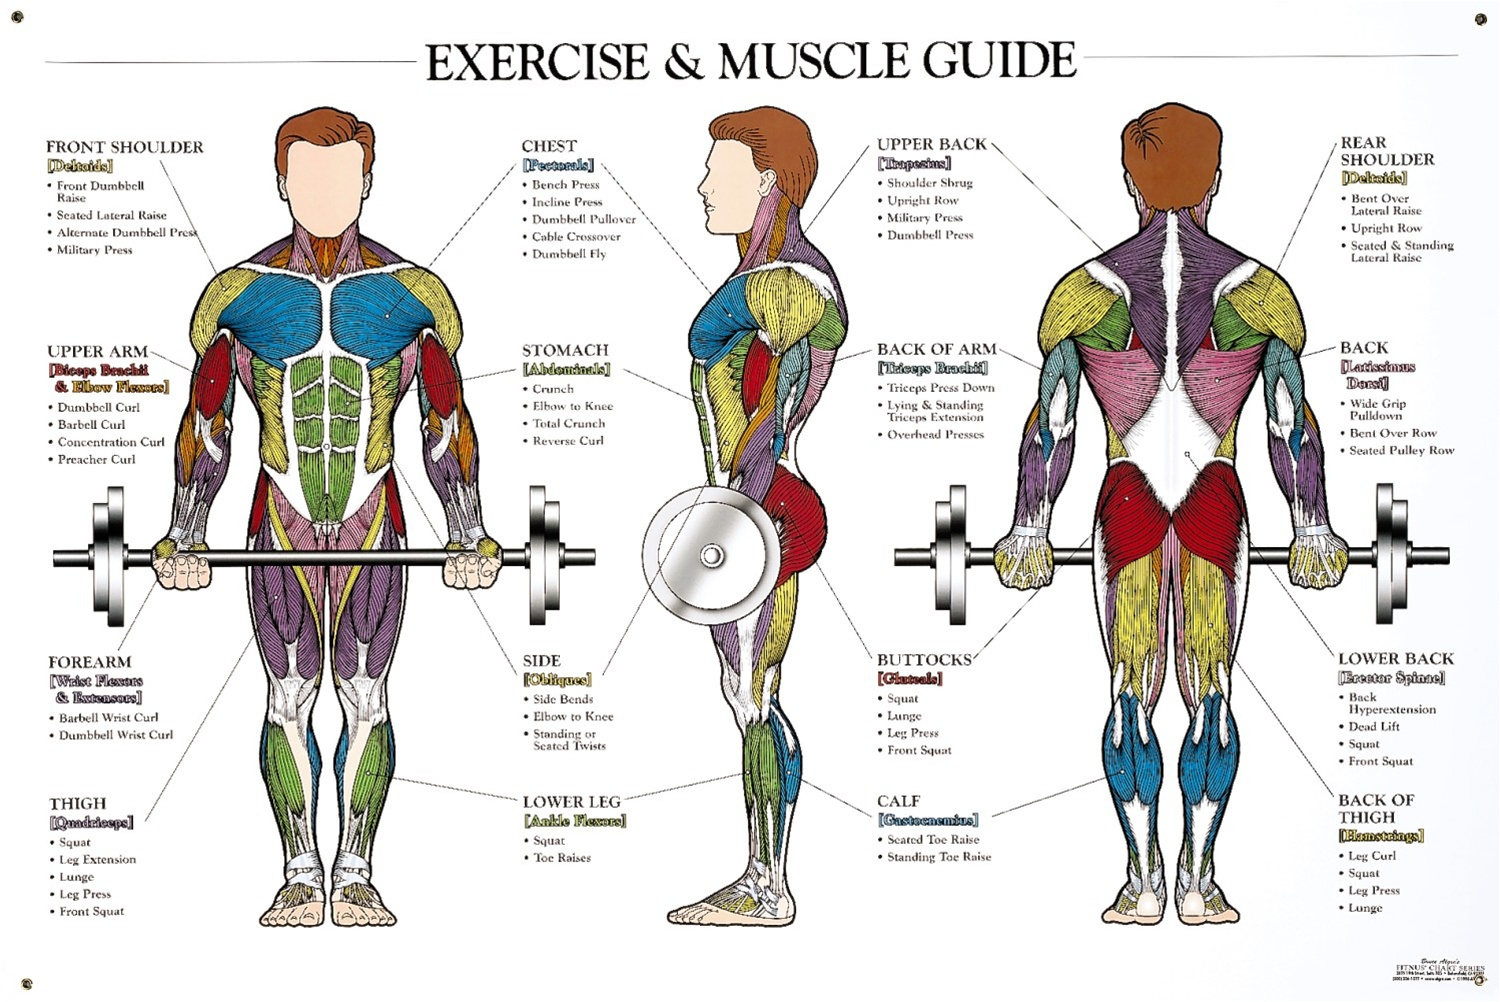 Muscle Anatomy Workout Image Weighteasyloss Fitness